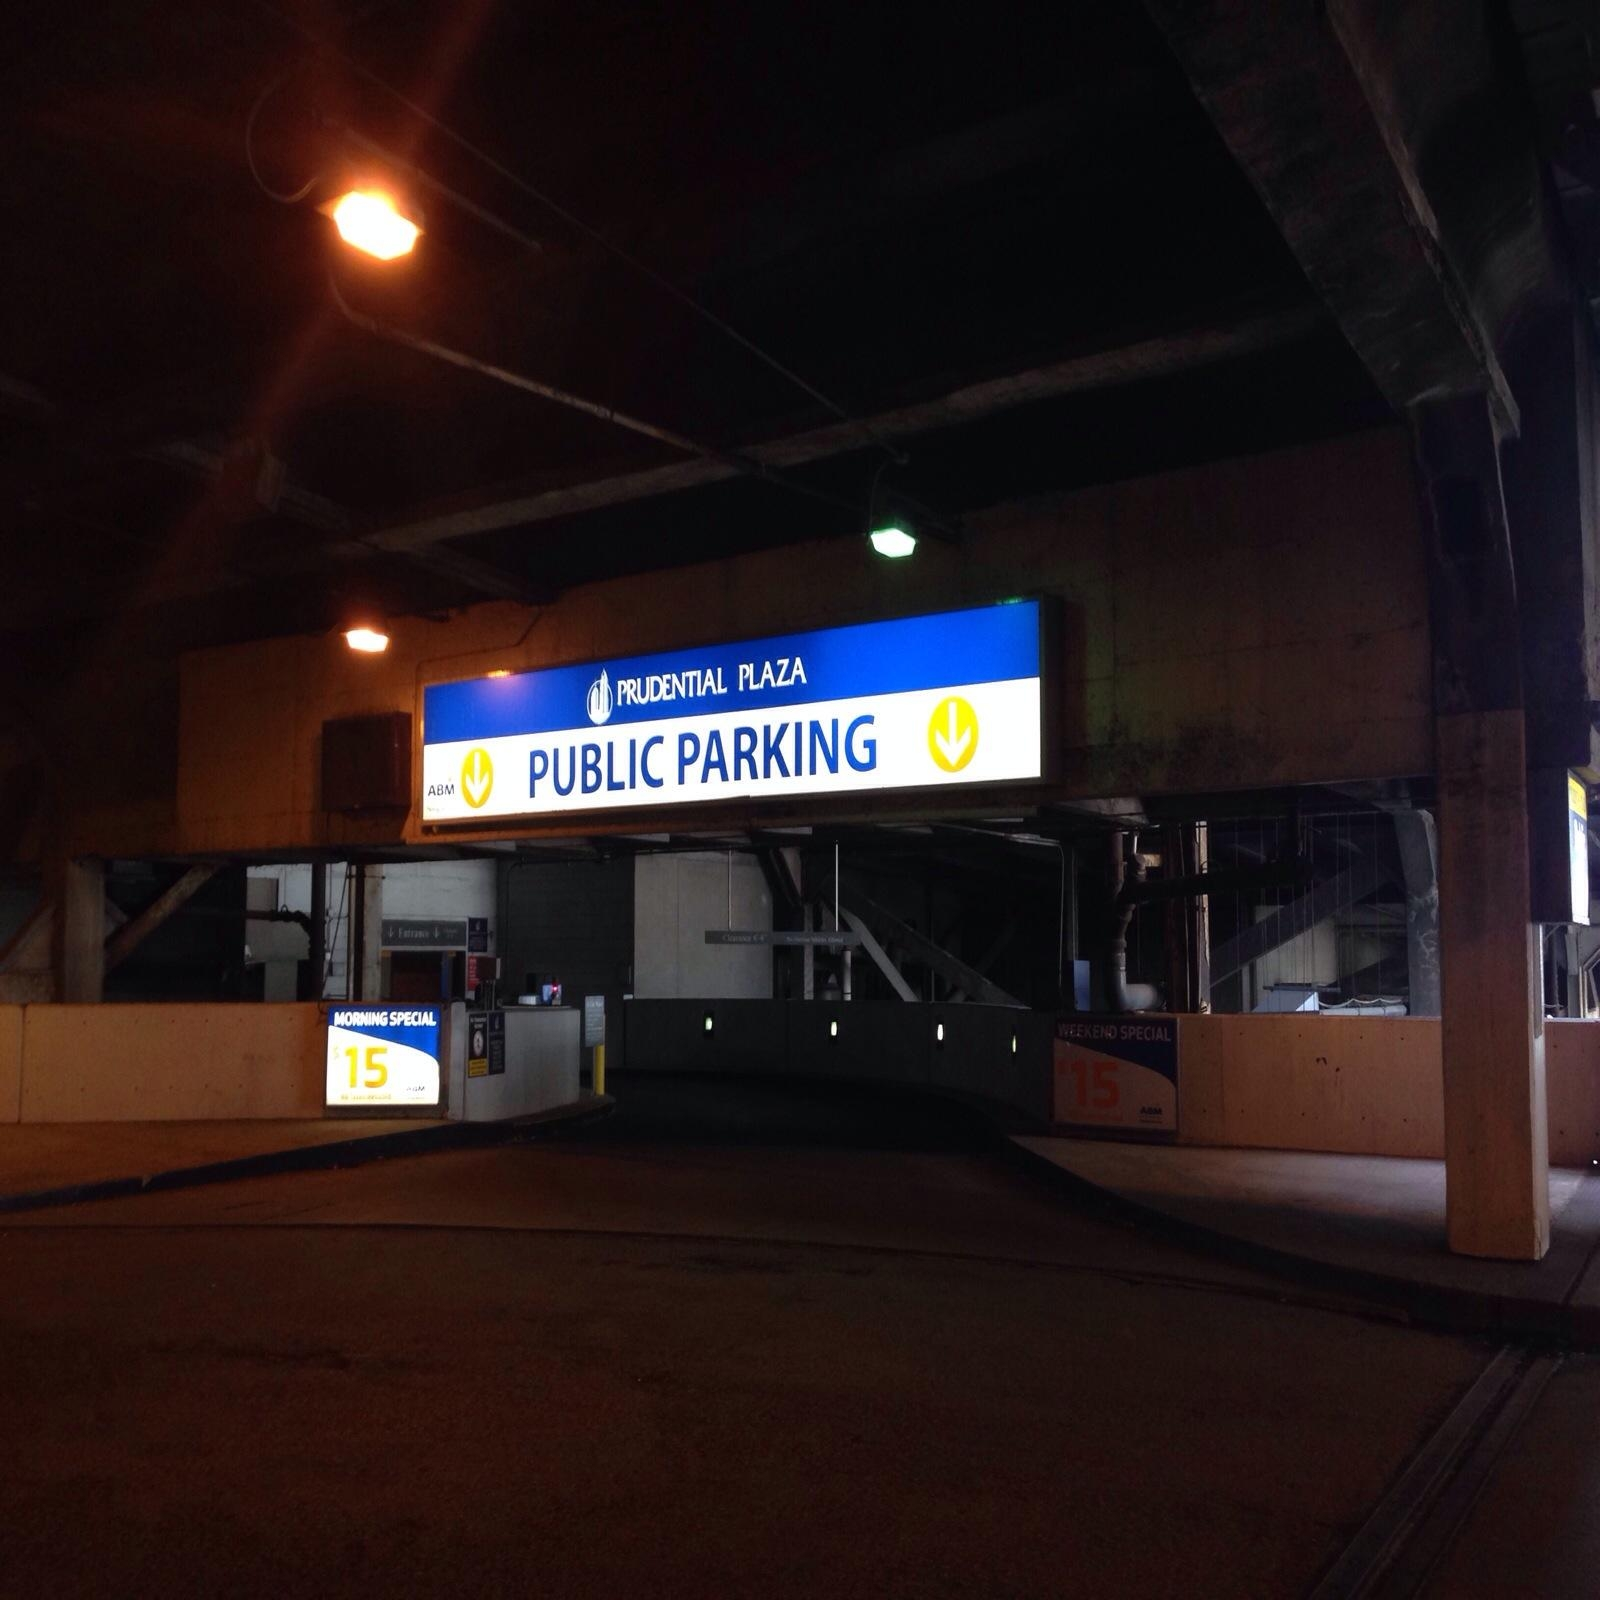 Prudential Plaza Parking